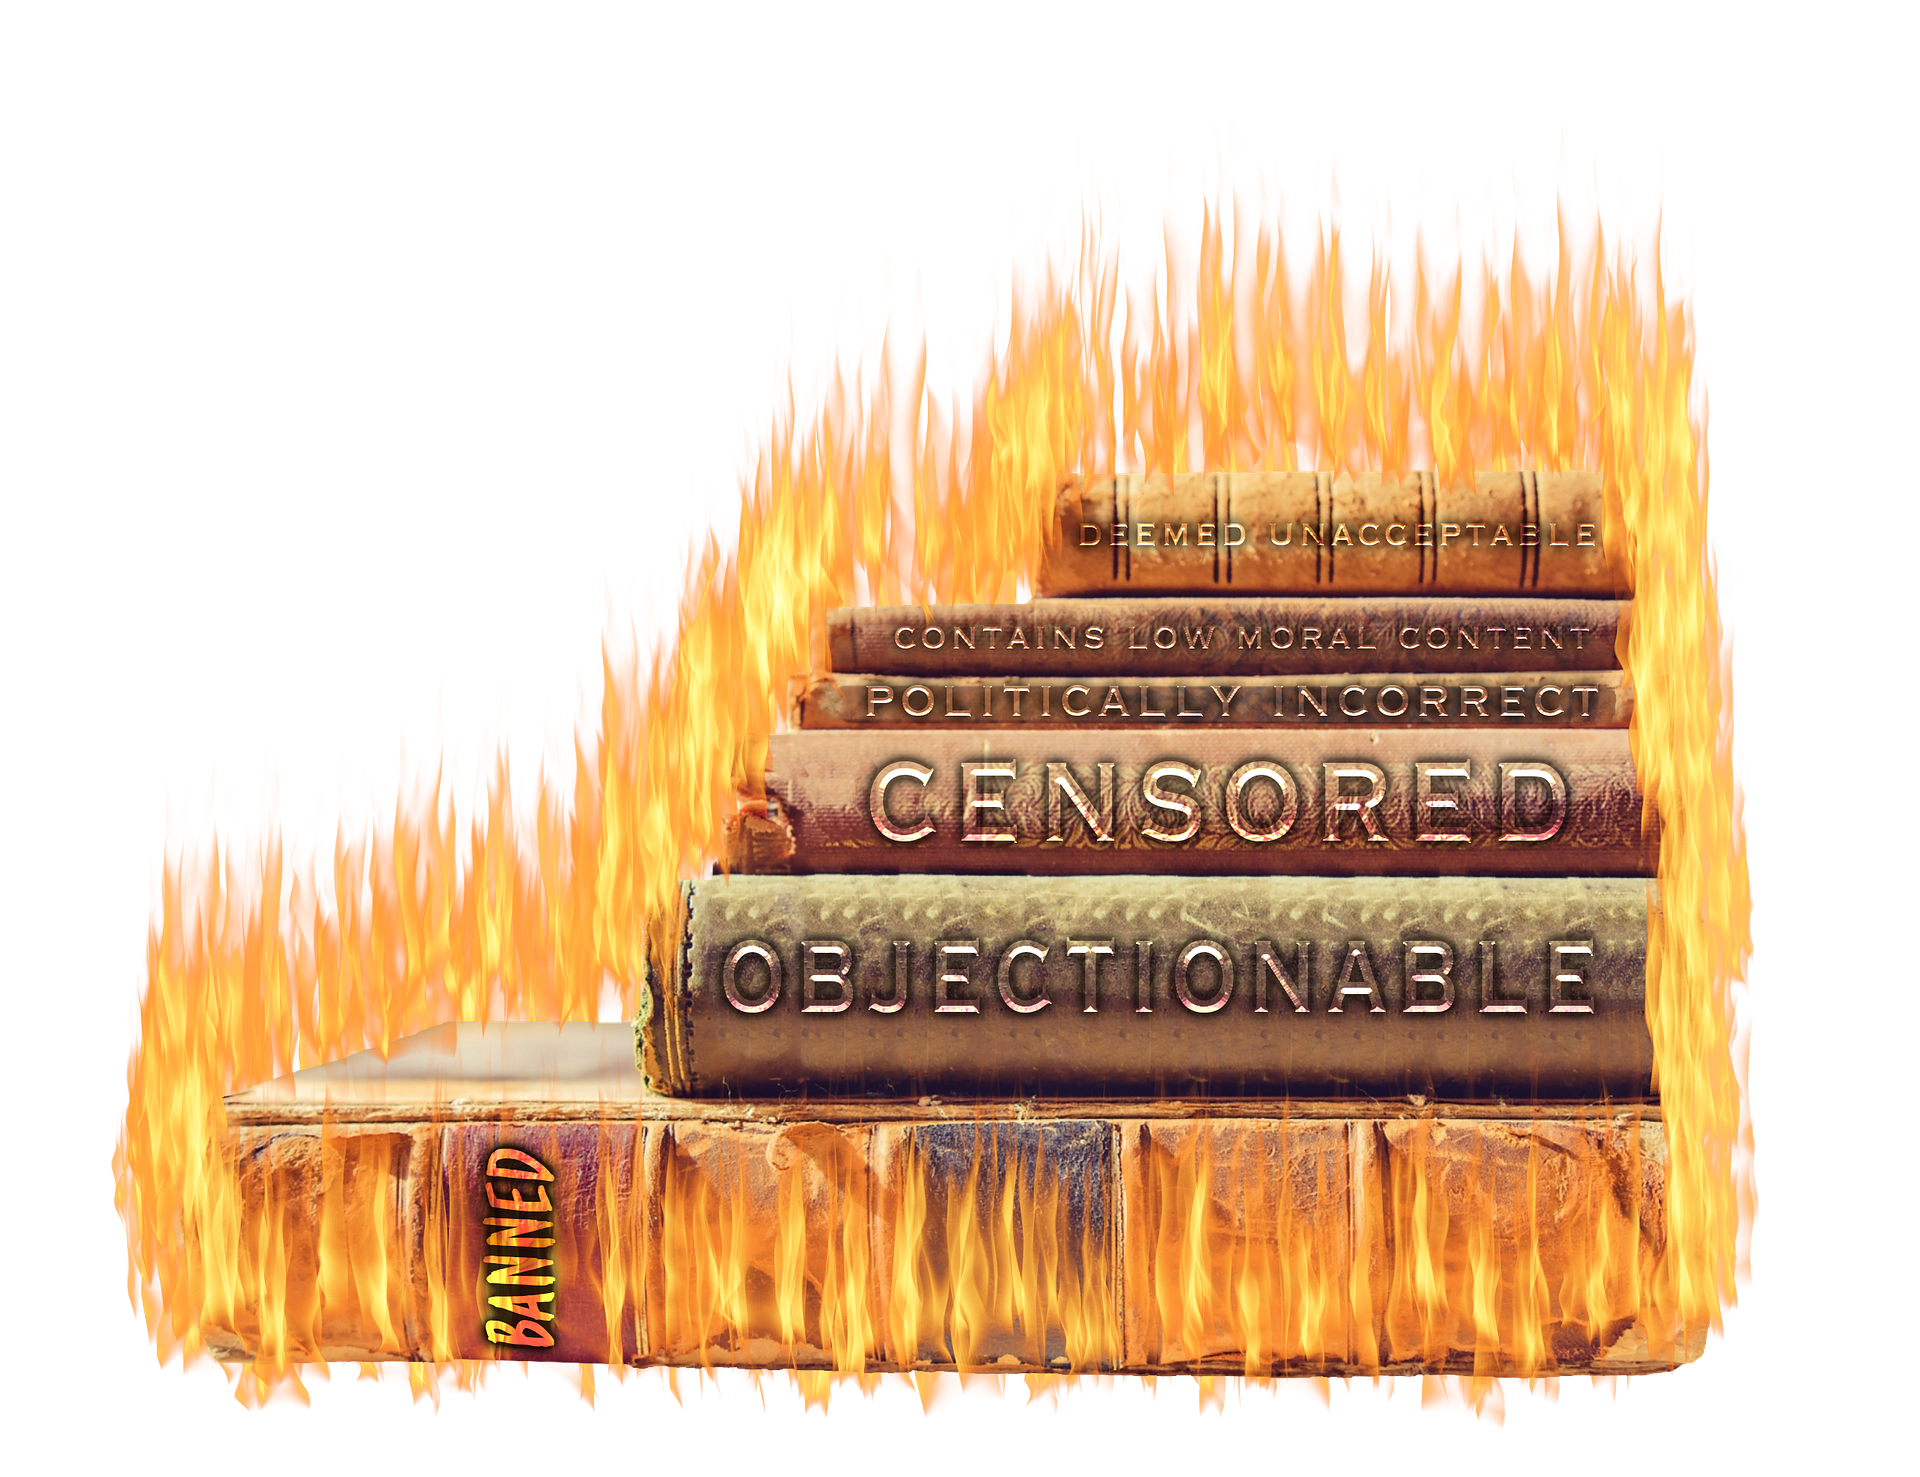 Analogy of censorship with books on fire